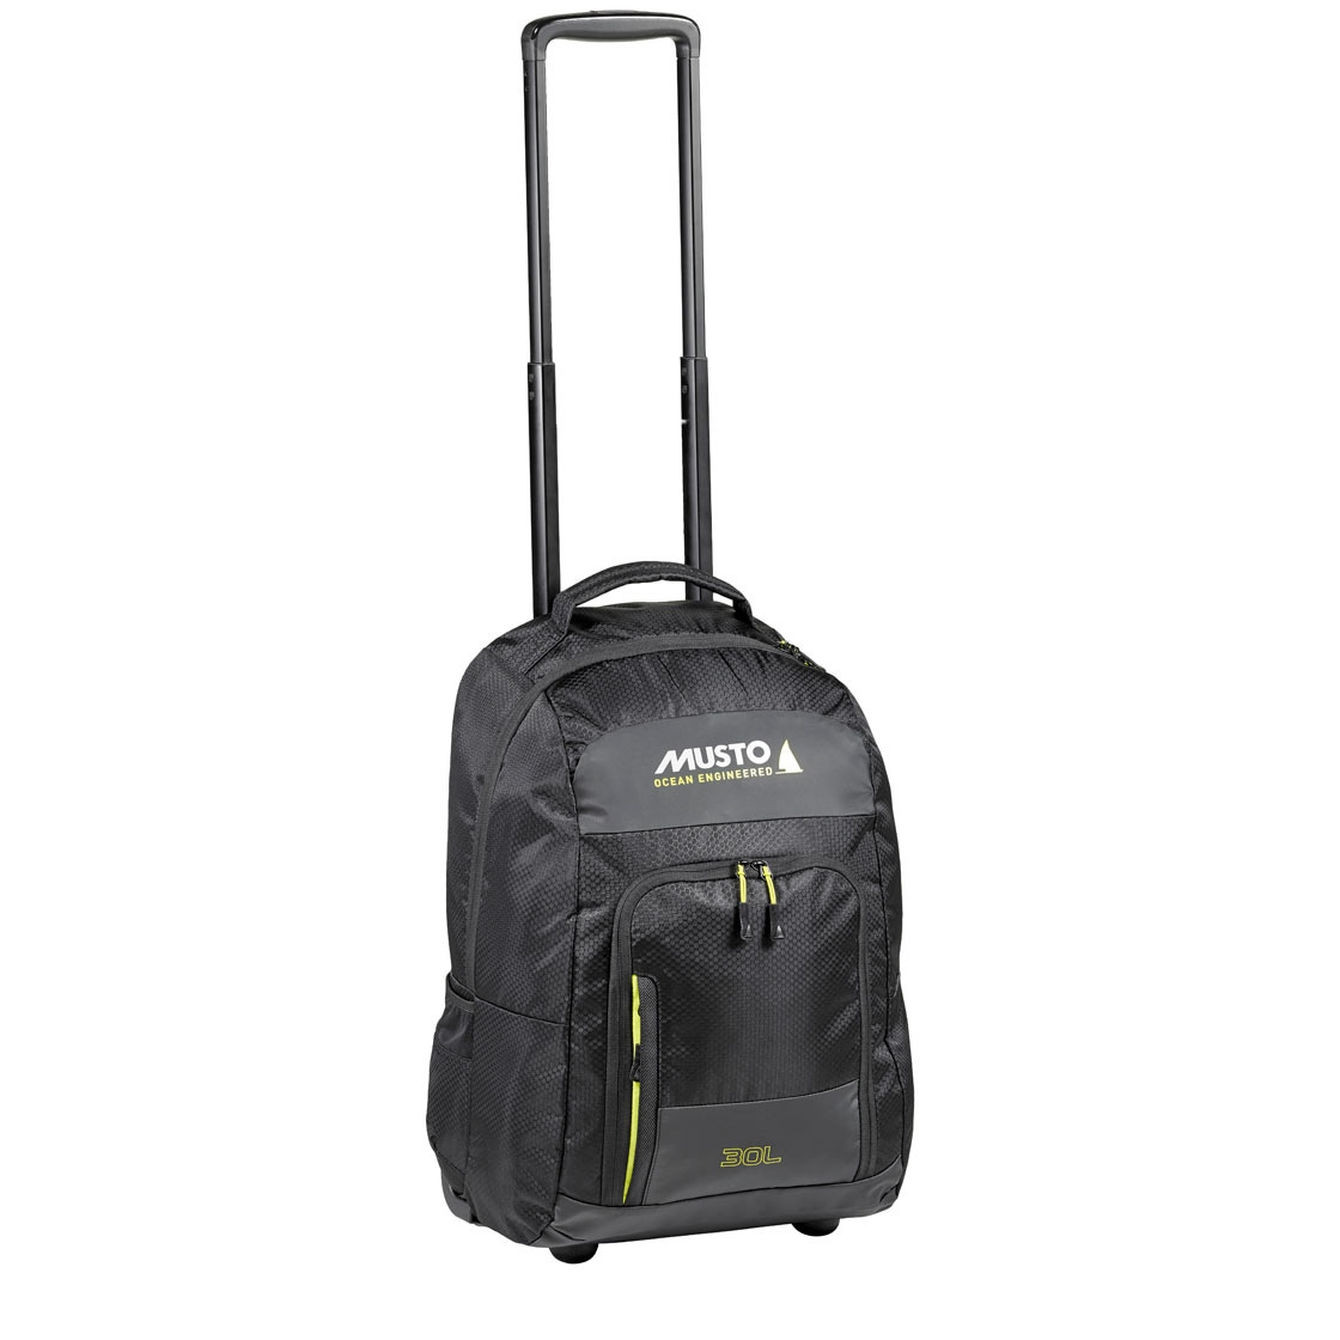 Musto Ess Wheel Cabin Case 30L